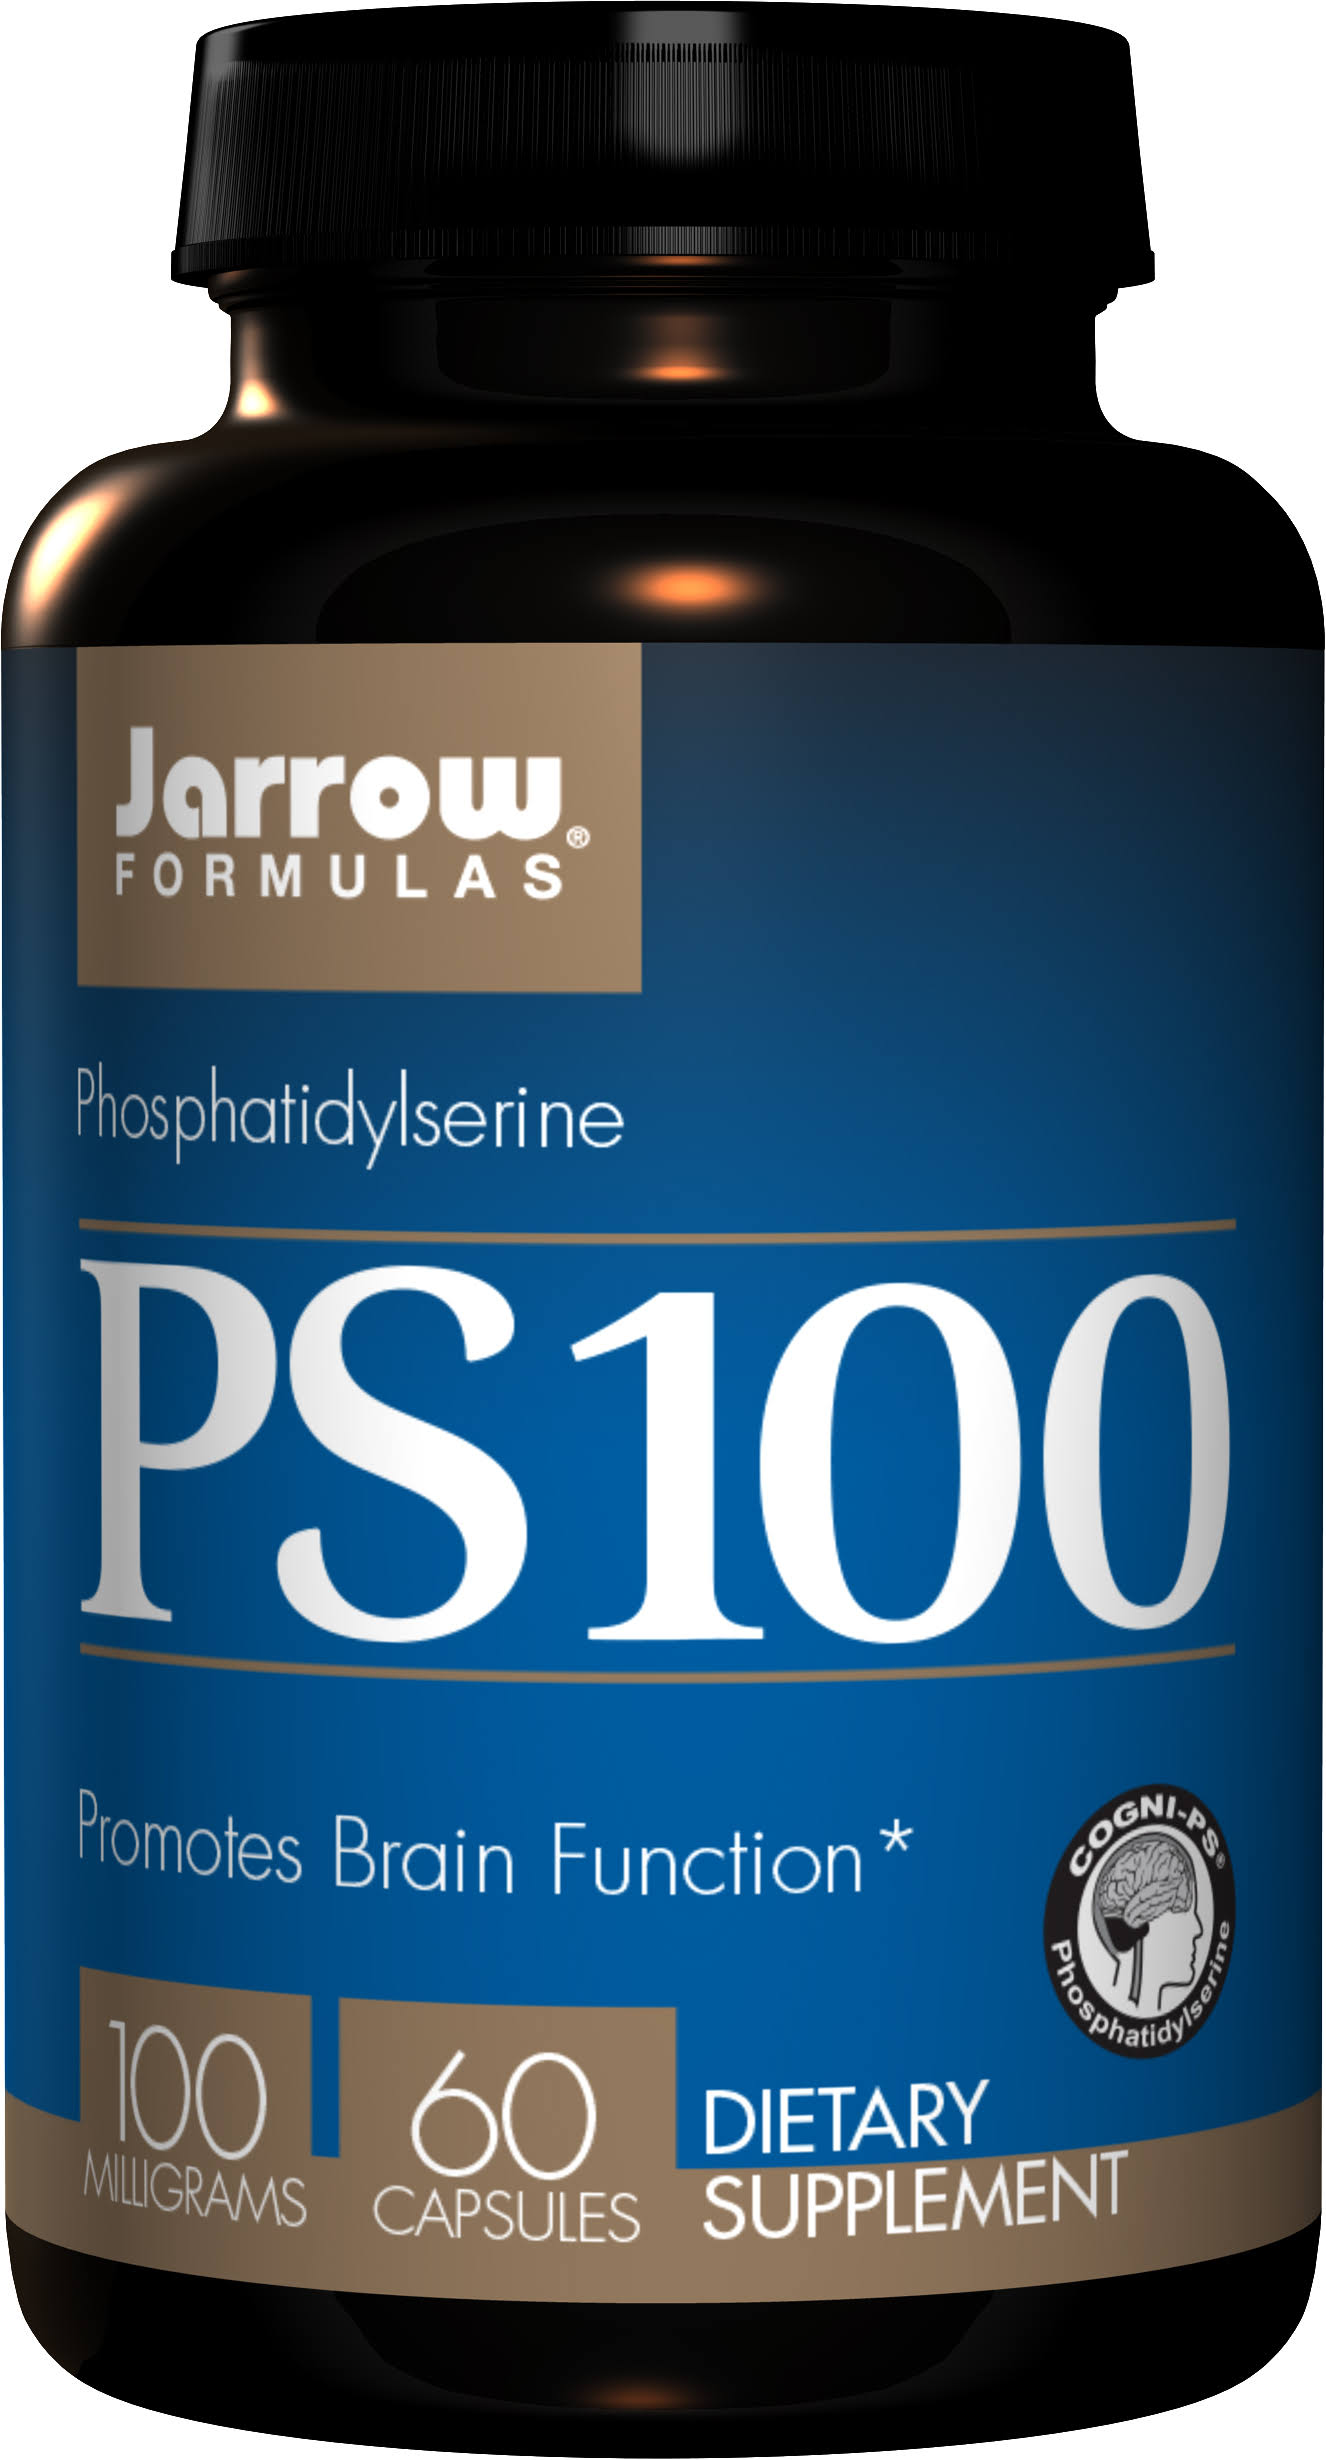 Jarrow Formulas Ps100 Supplement - 100mg, 60ct